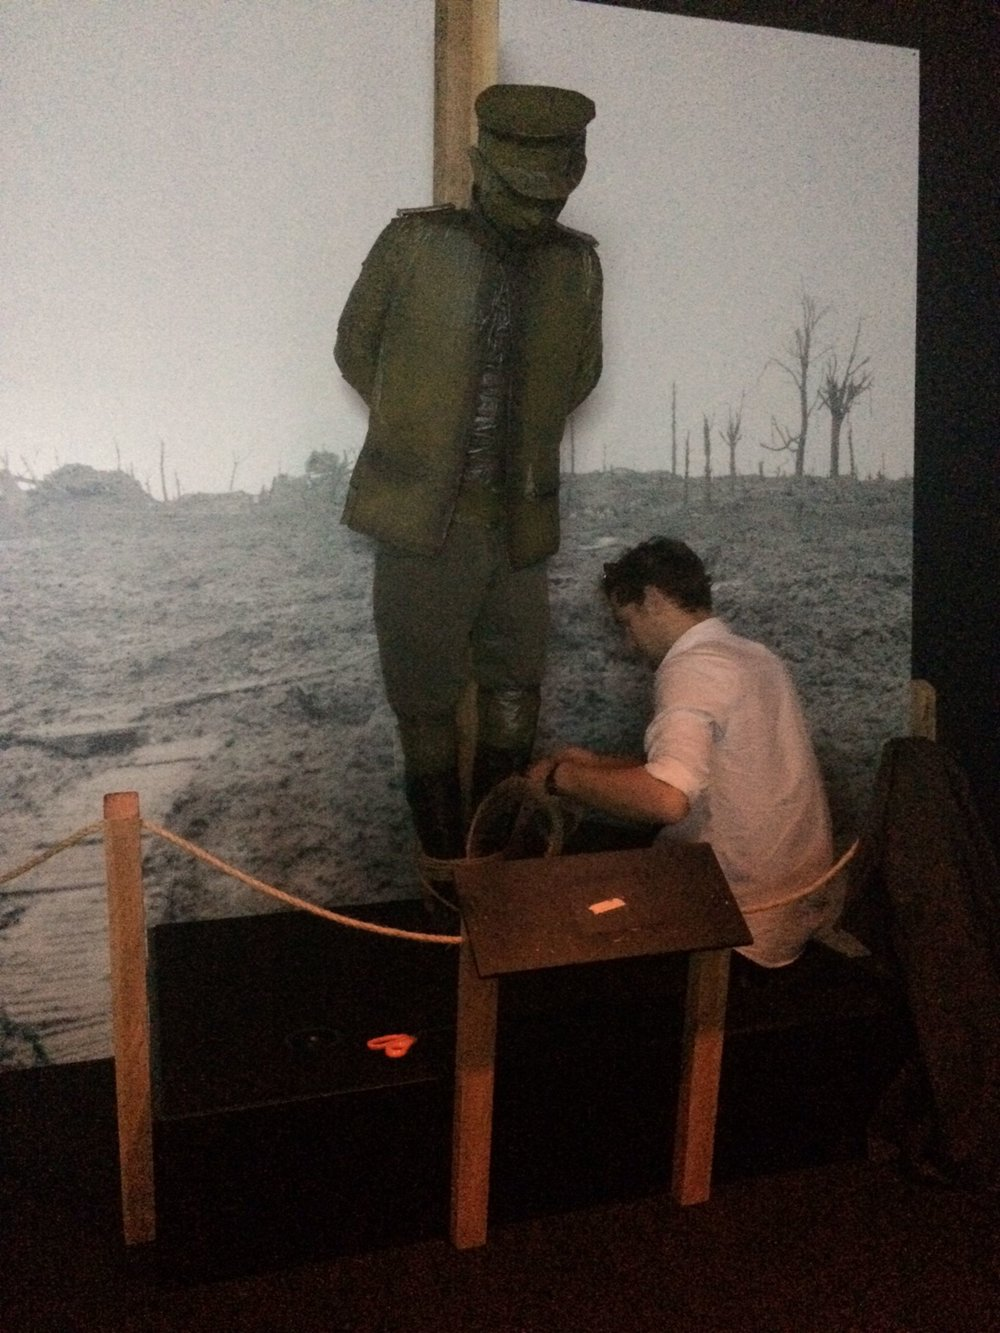 Henry installing his doppelgänger at the Great War Exhibition